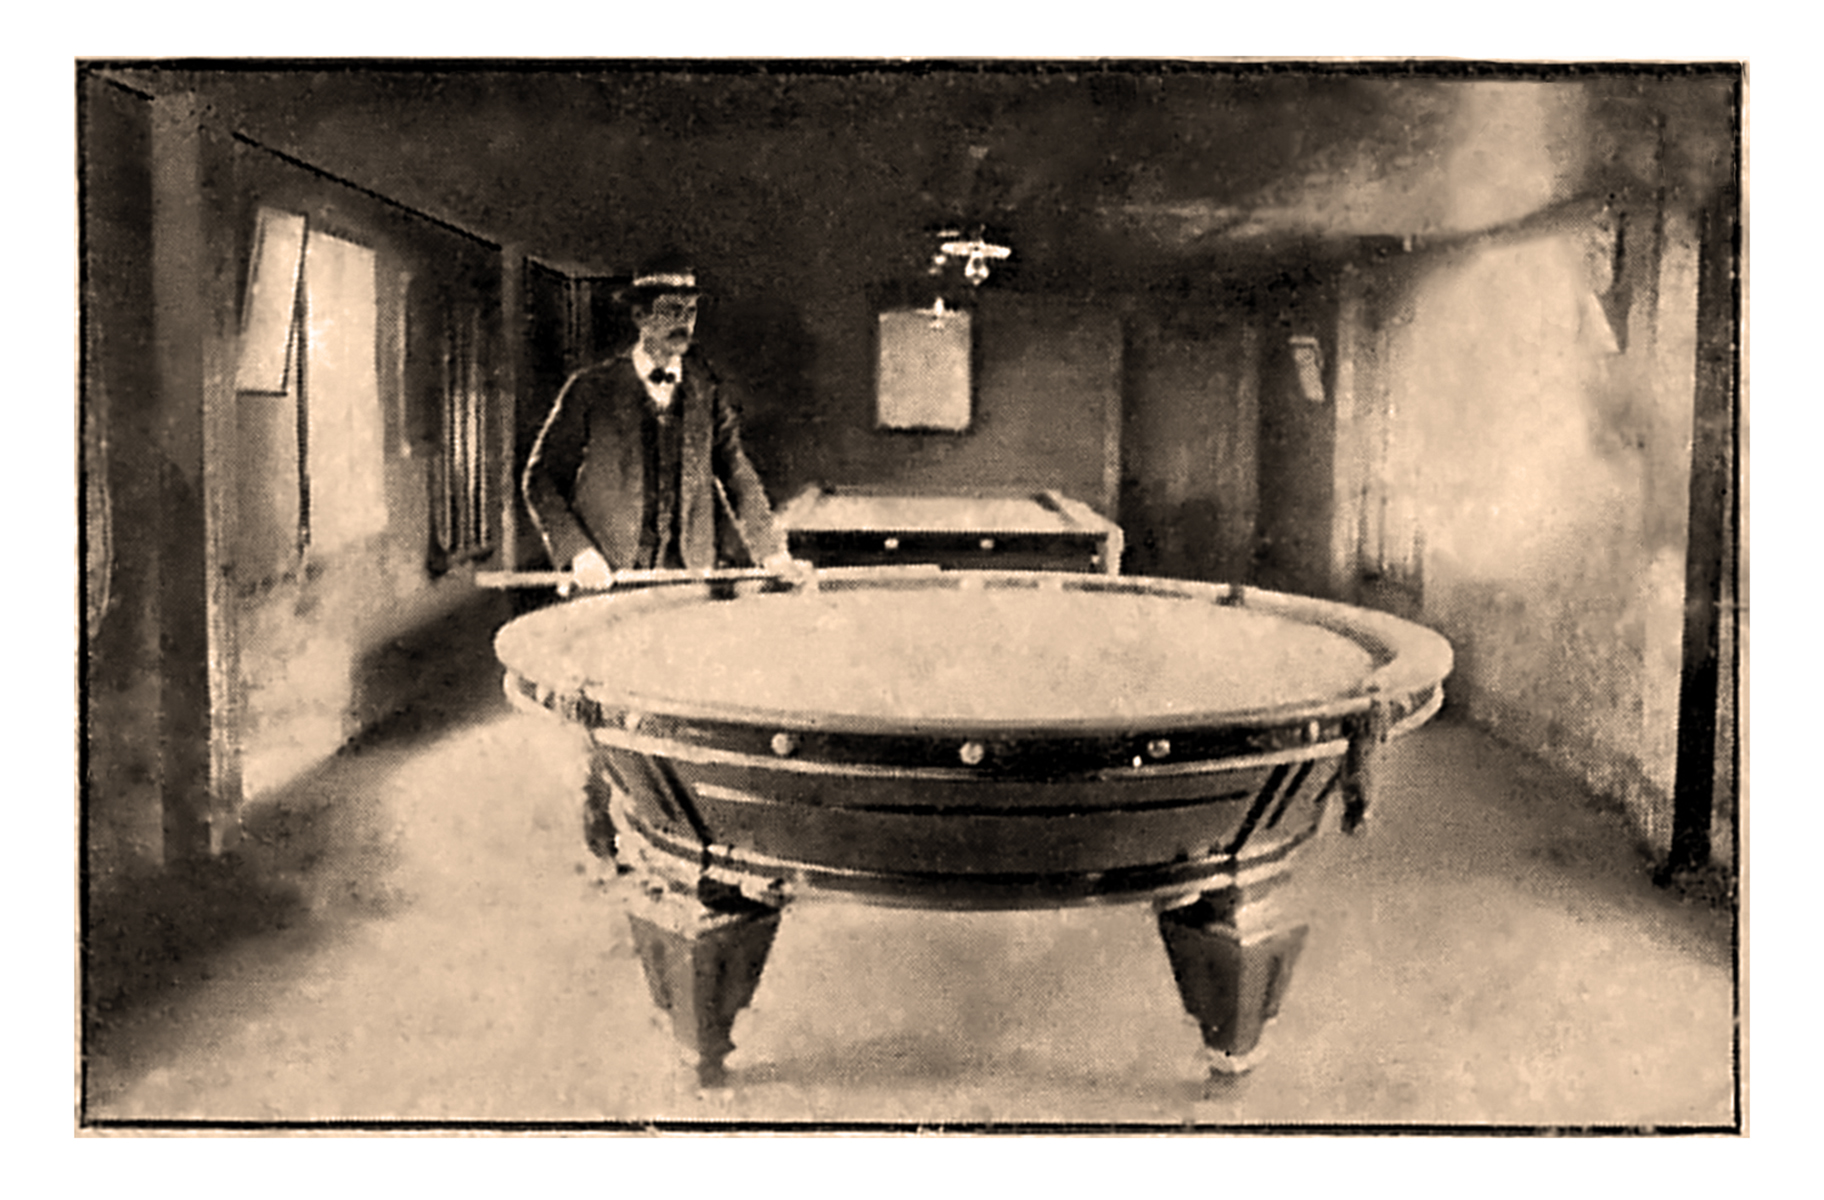 The Franklin Hotel Round Pool Table